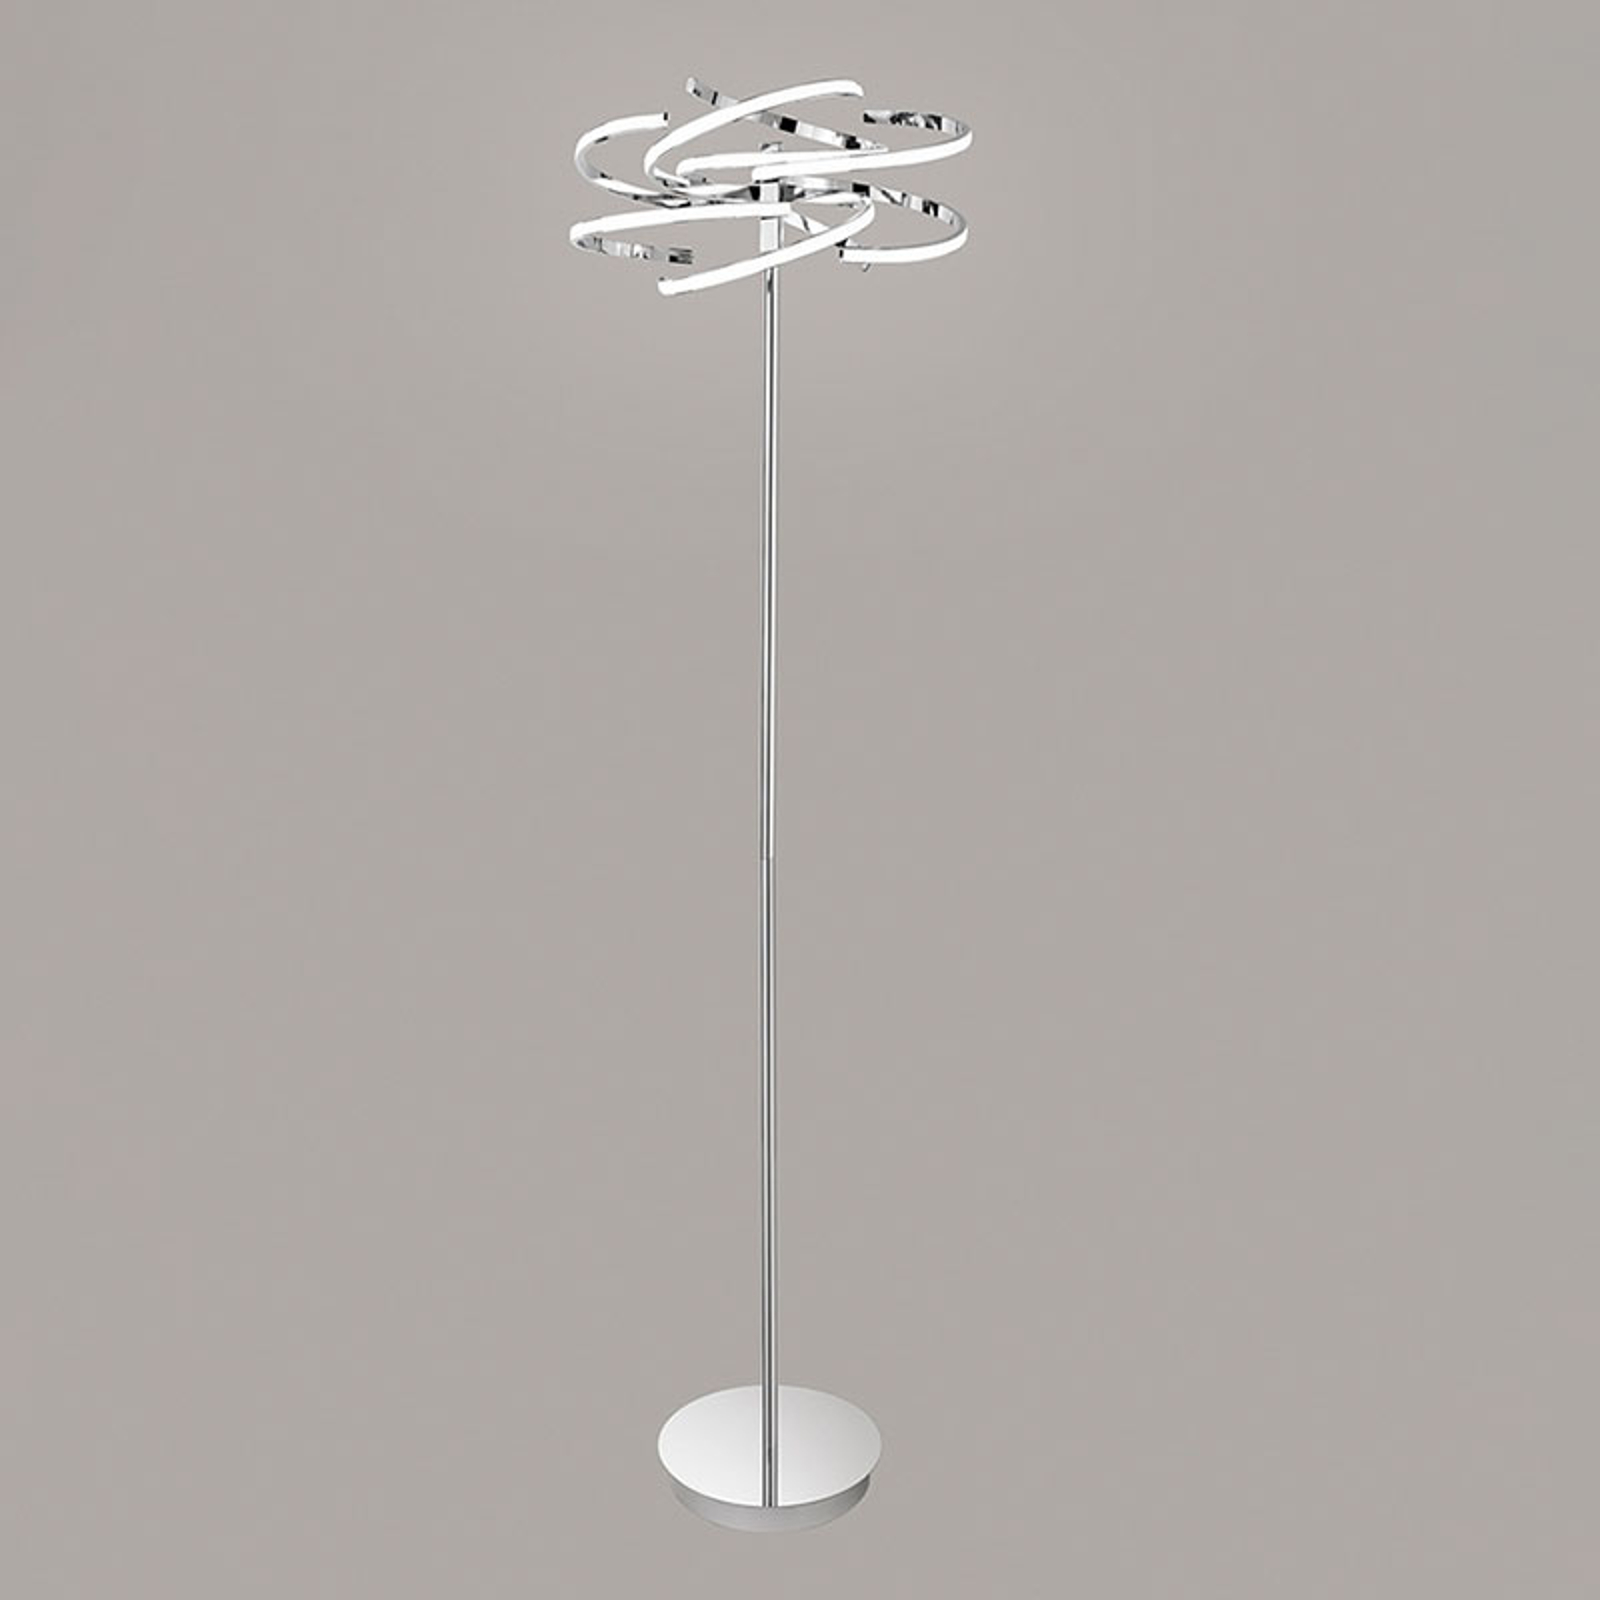 Lampadaire LED 6399 chromé